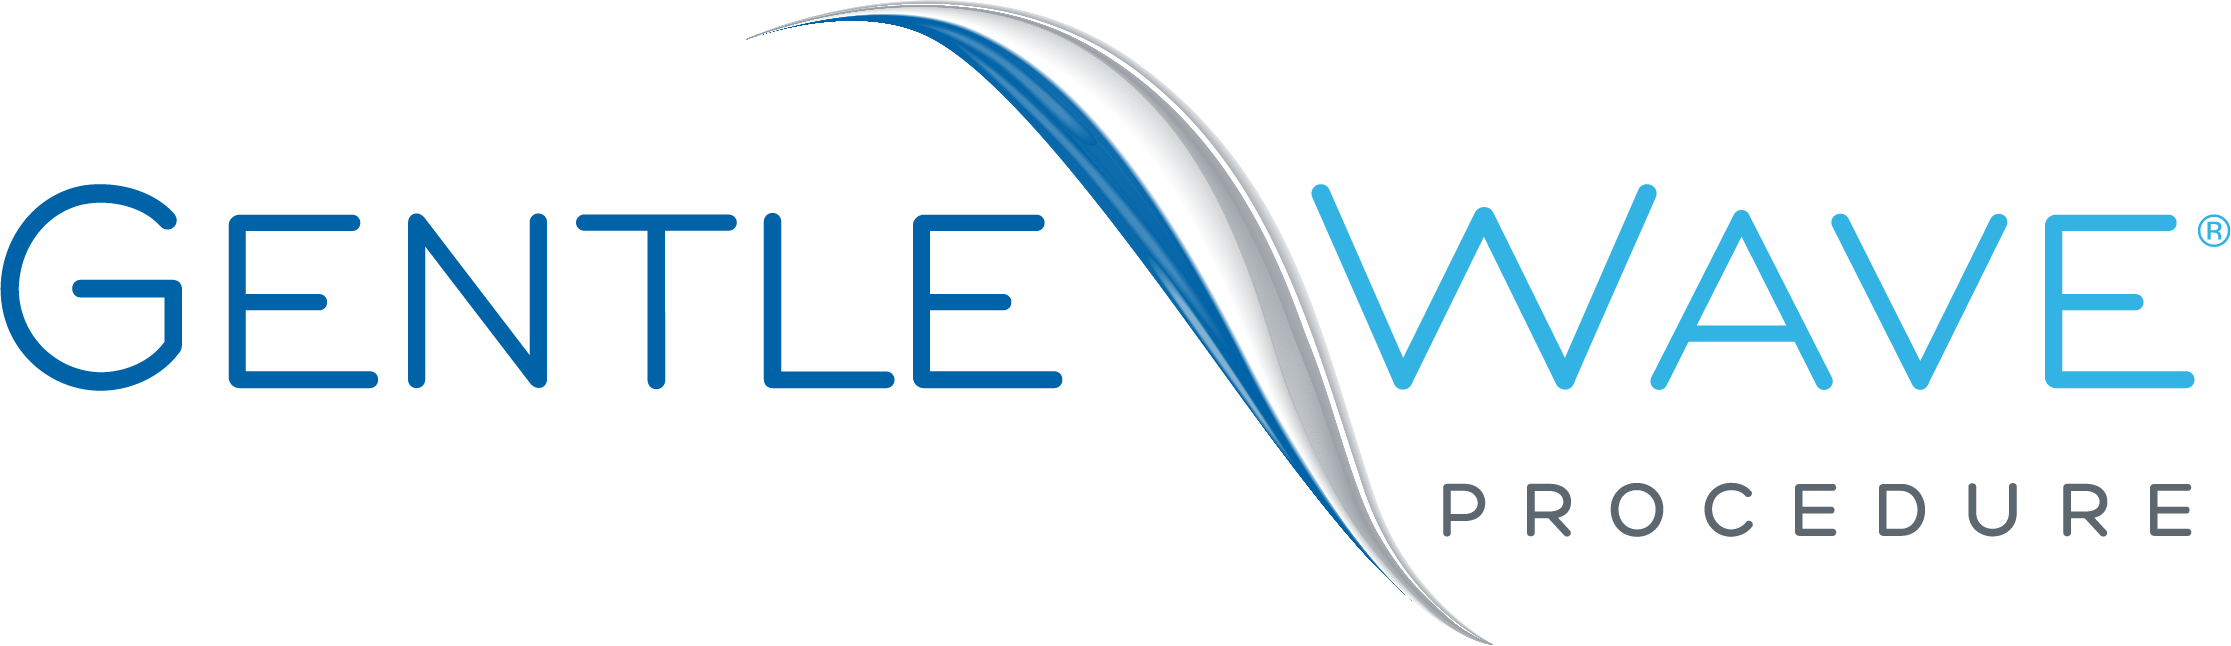 GentleWave Procedure Logo